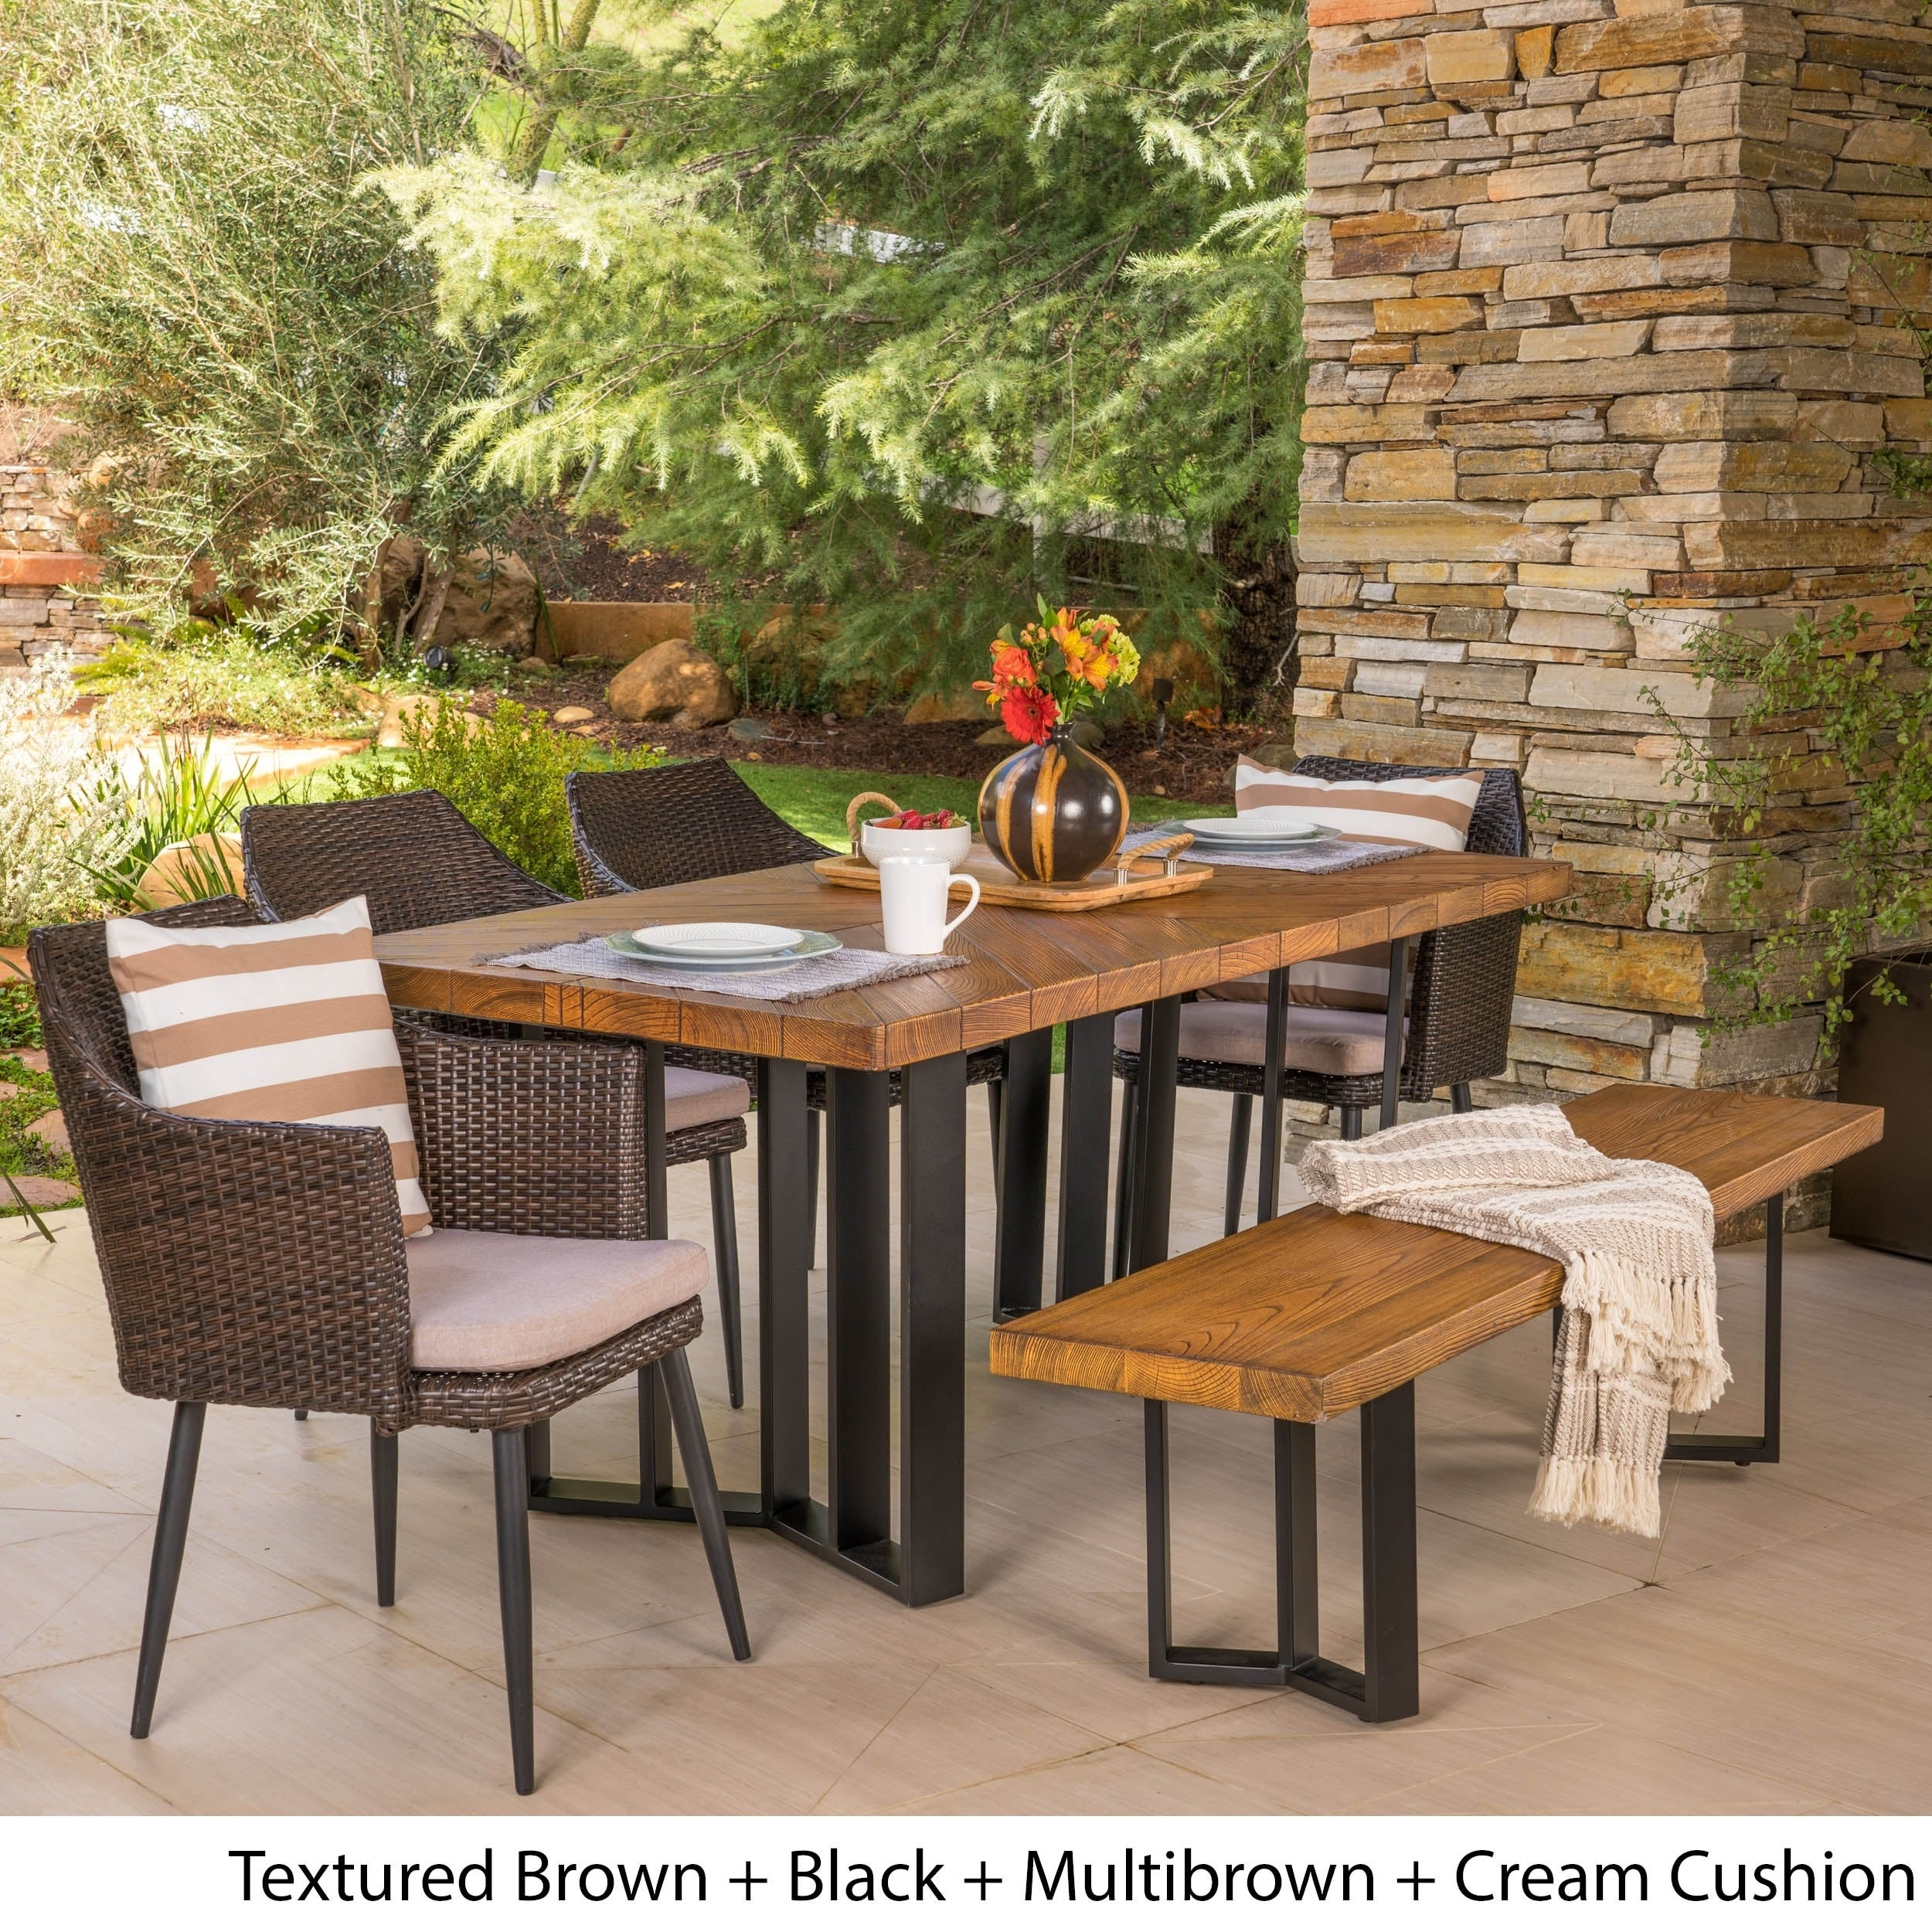 Shop Zander Outdoor Dining Set With Dining Table And Bench Wicker Dining Chairs By Christopher Knight Home On Sale Overstock 20750553